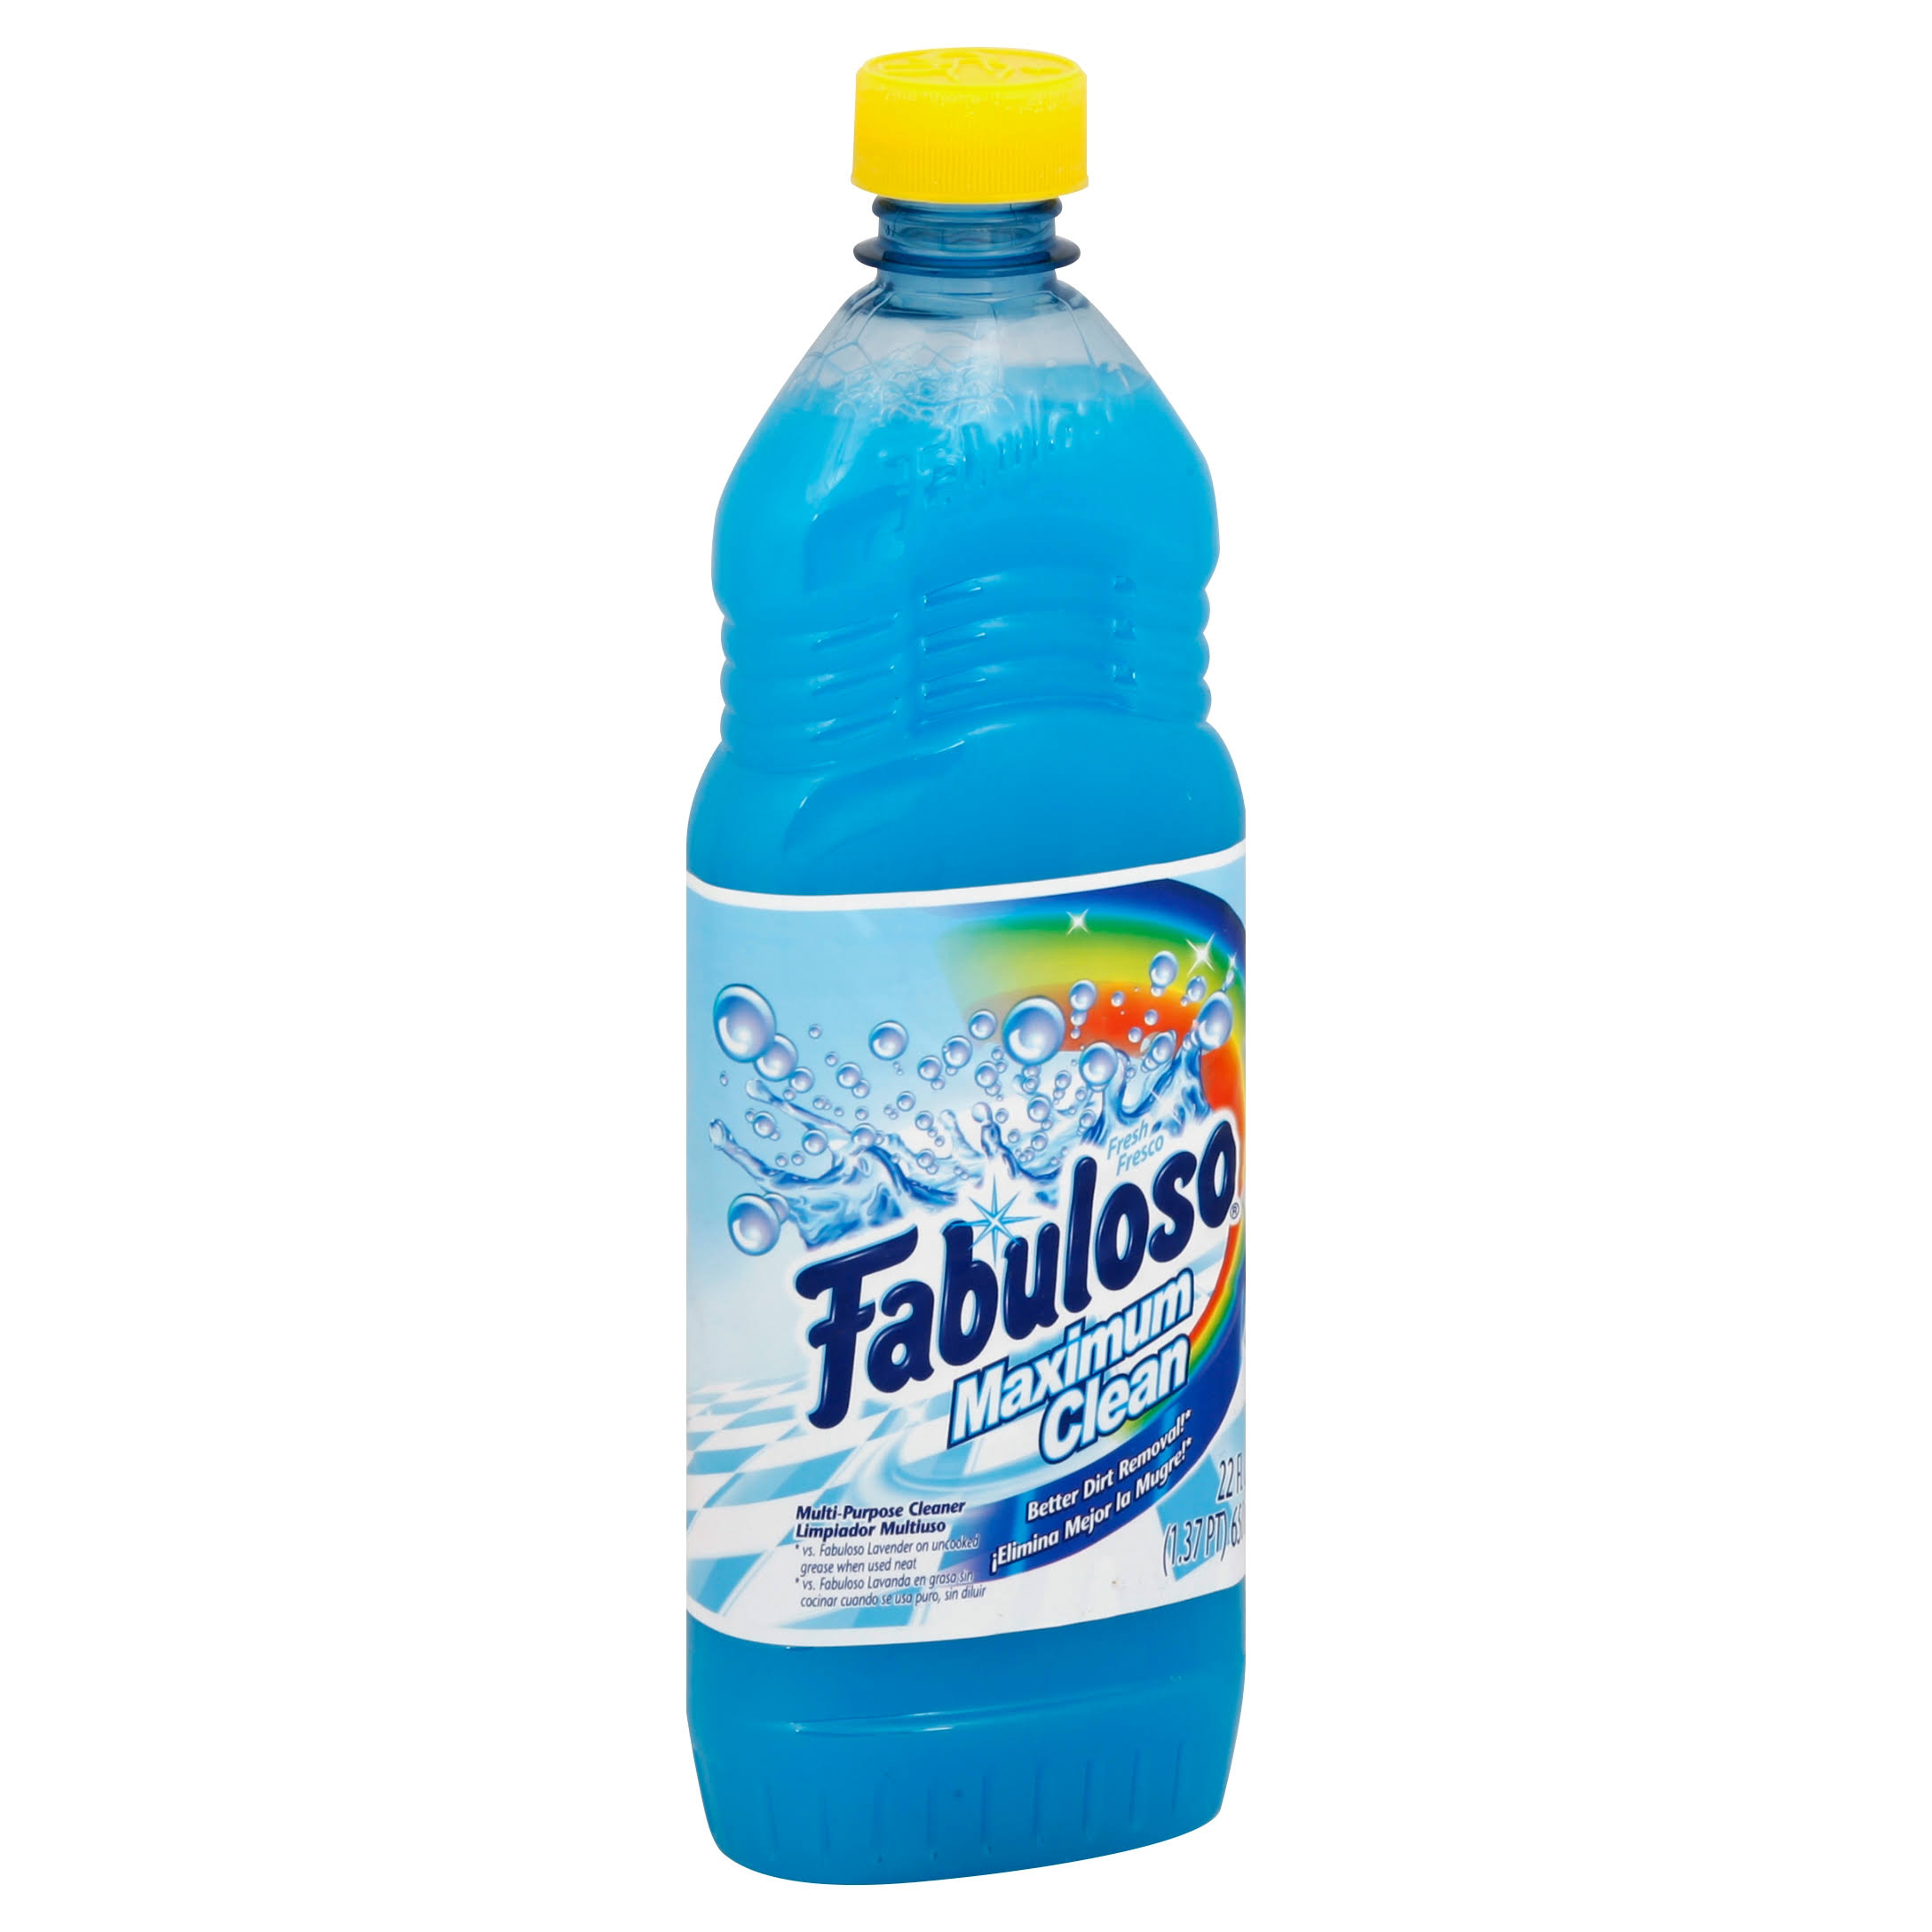 Fabuloso Oxy Fresh All Purpose Cleaner - 22oz